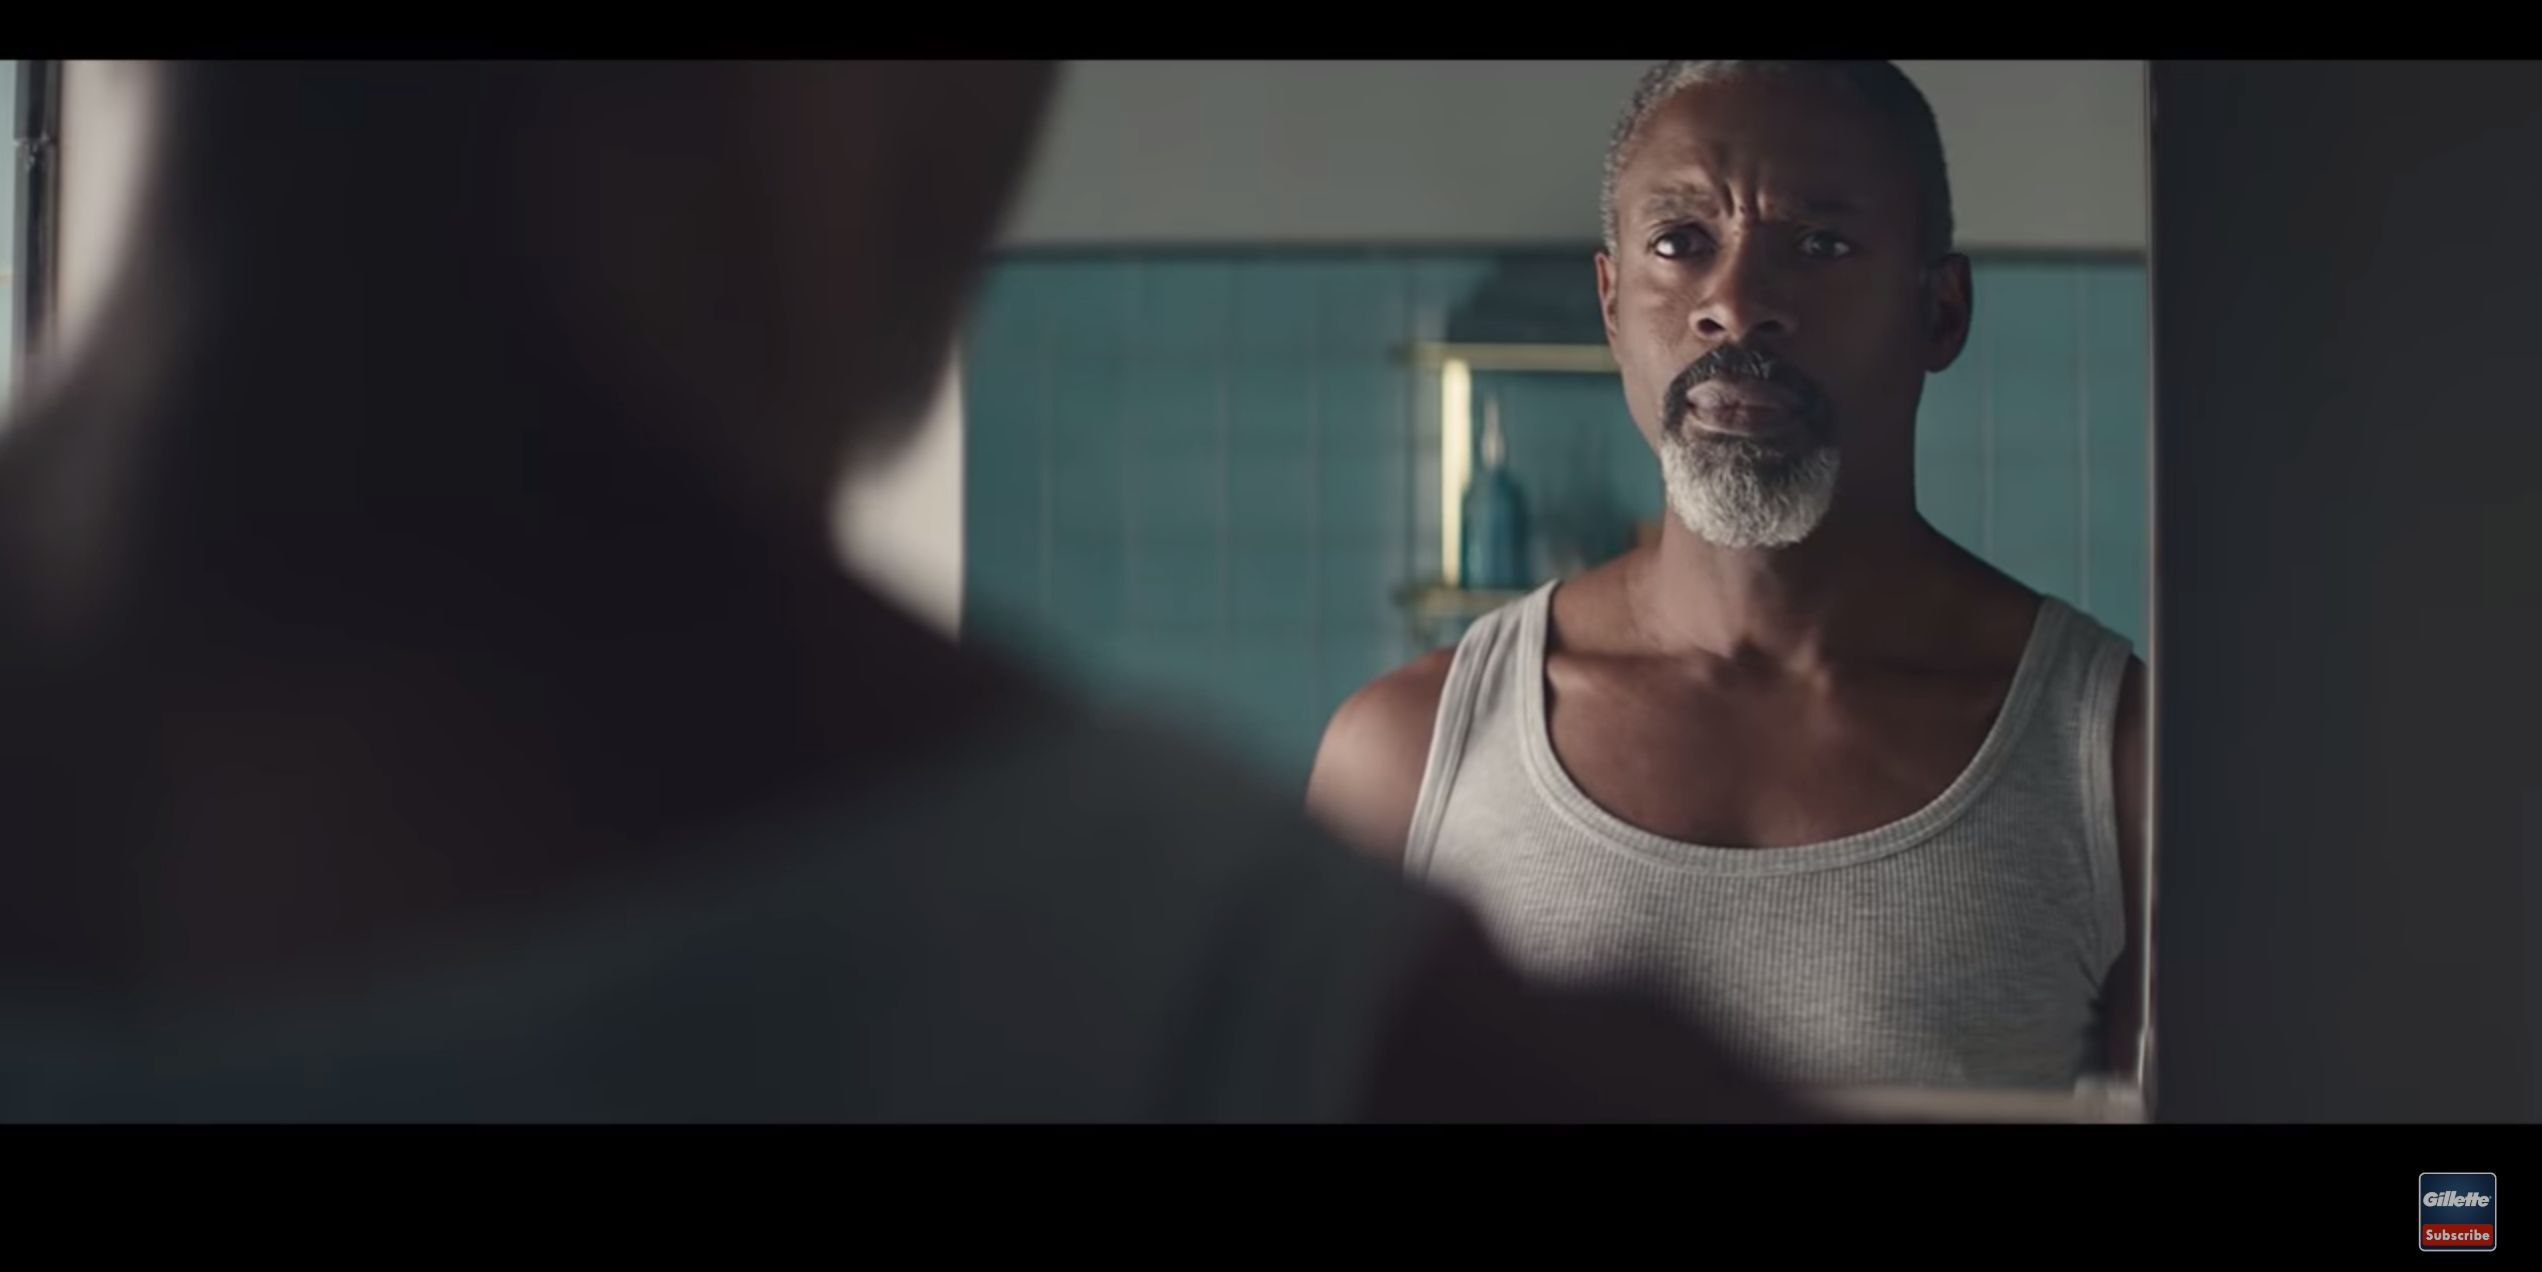 POWERFUL: Gillette Faces Backlash For 'Me Too' Advert Asking: 'Is This The Best A Man Can